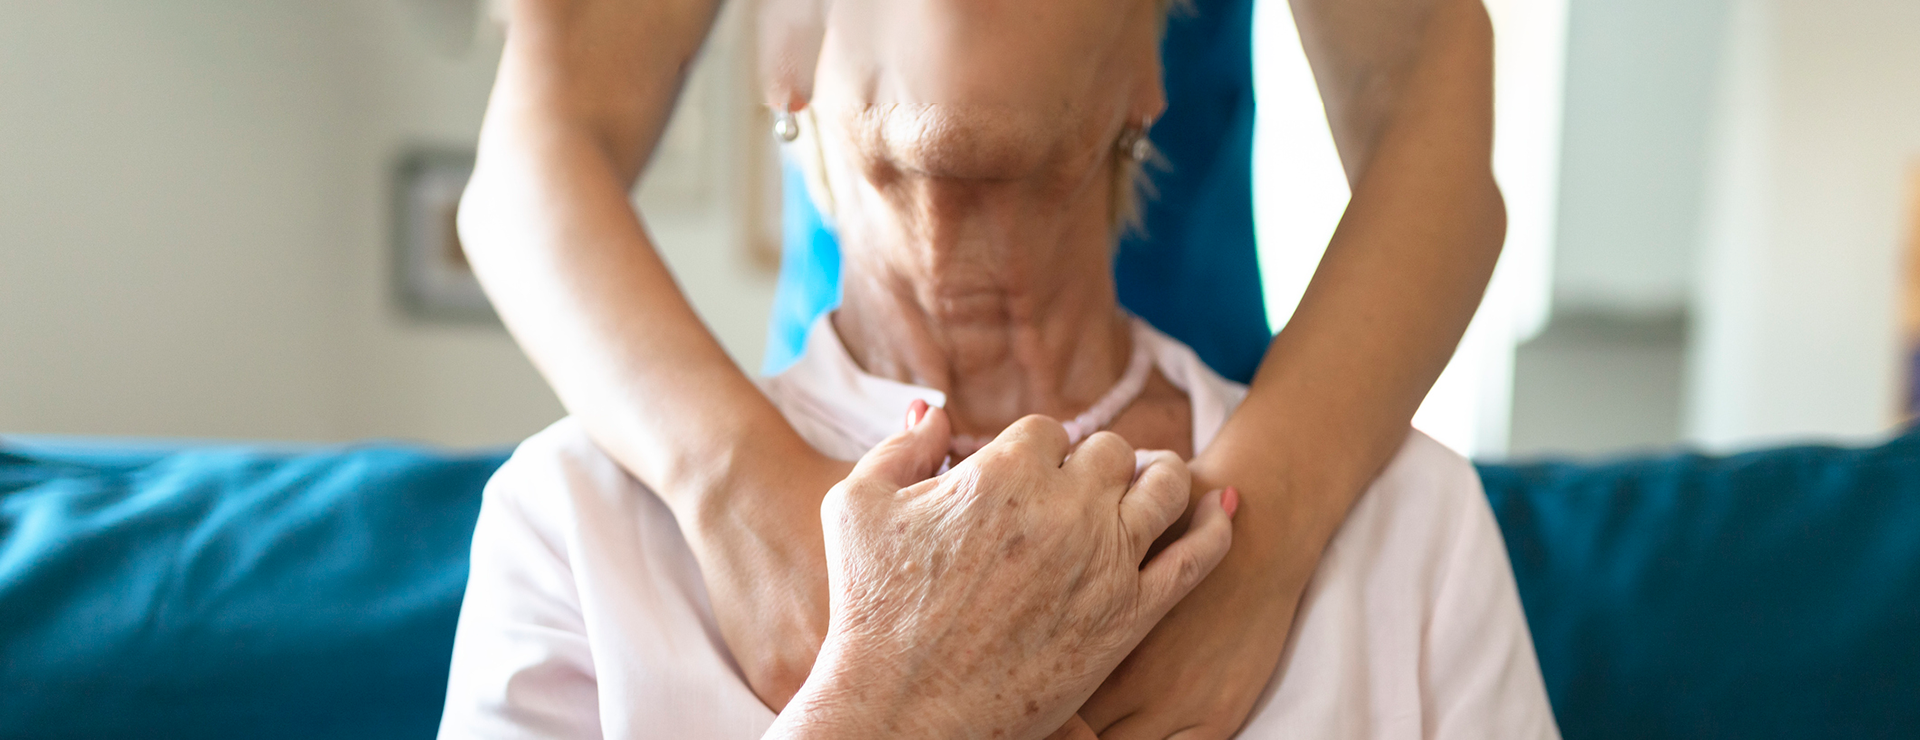 caregiver hugging senior patient